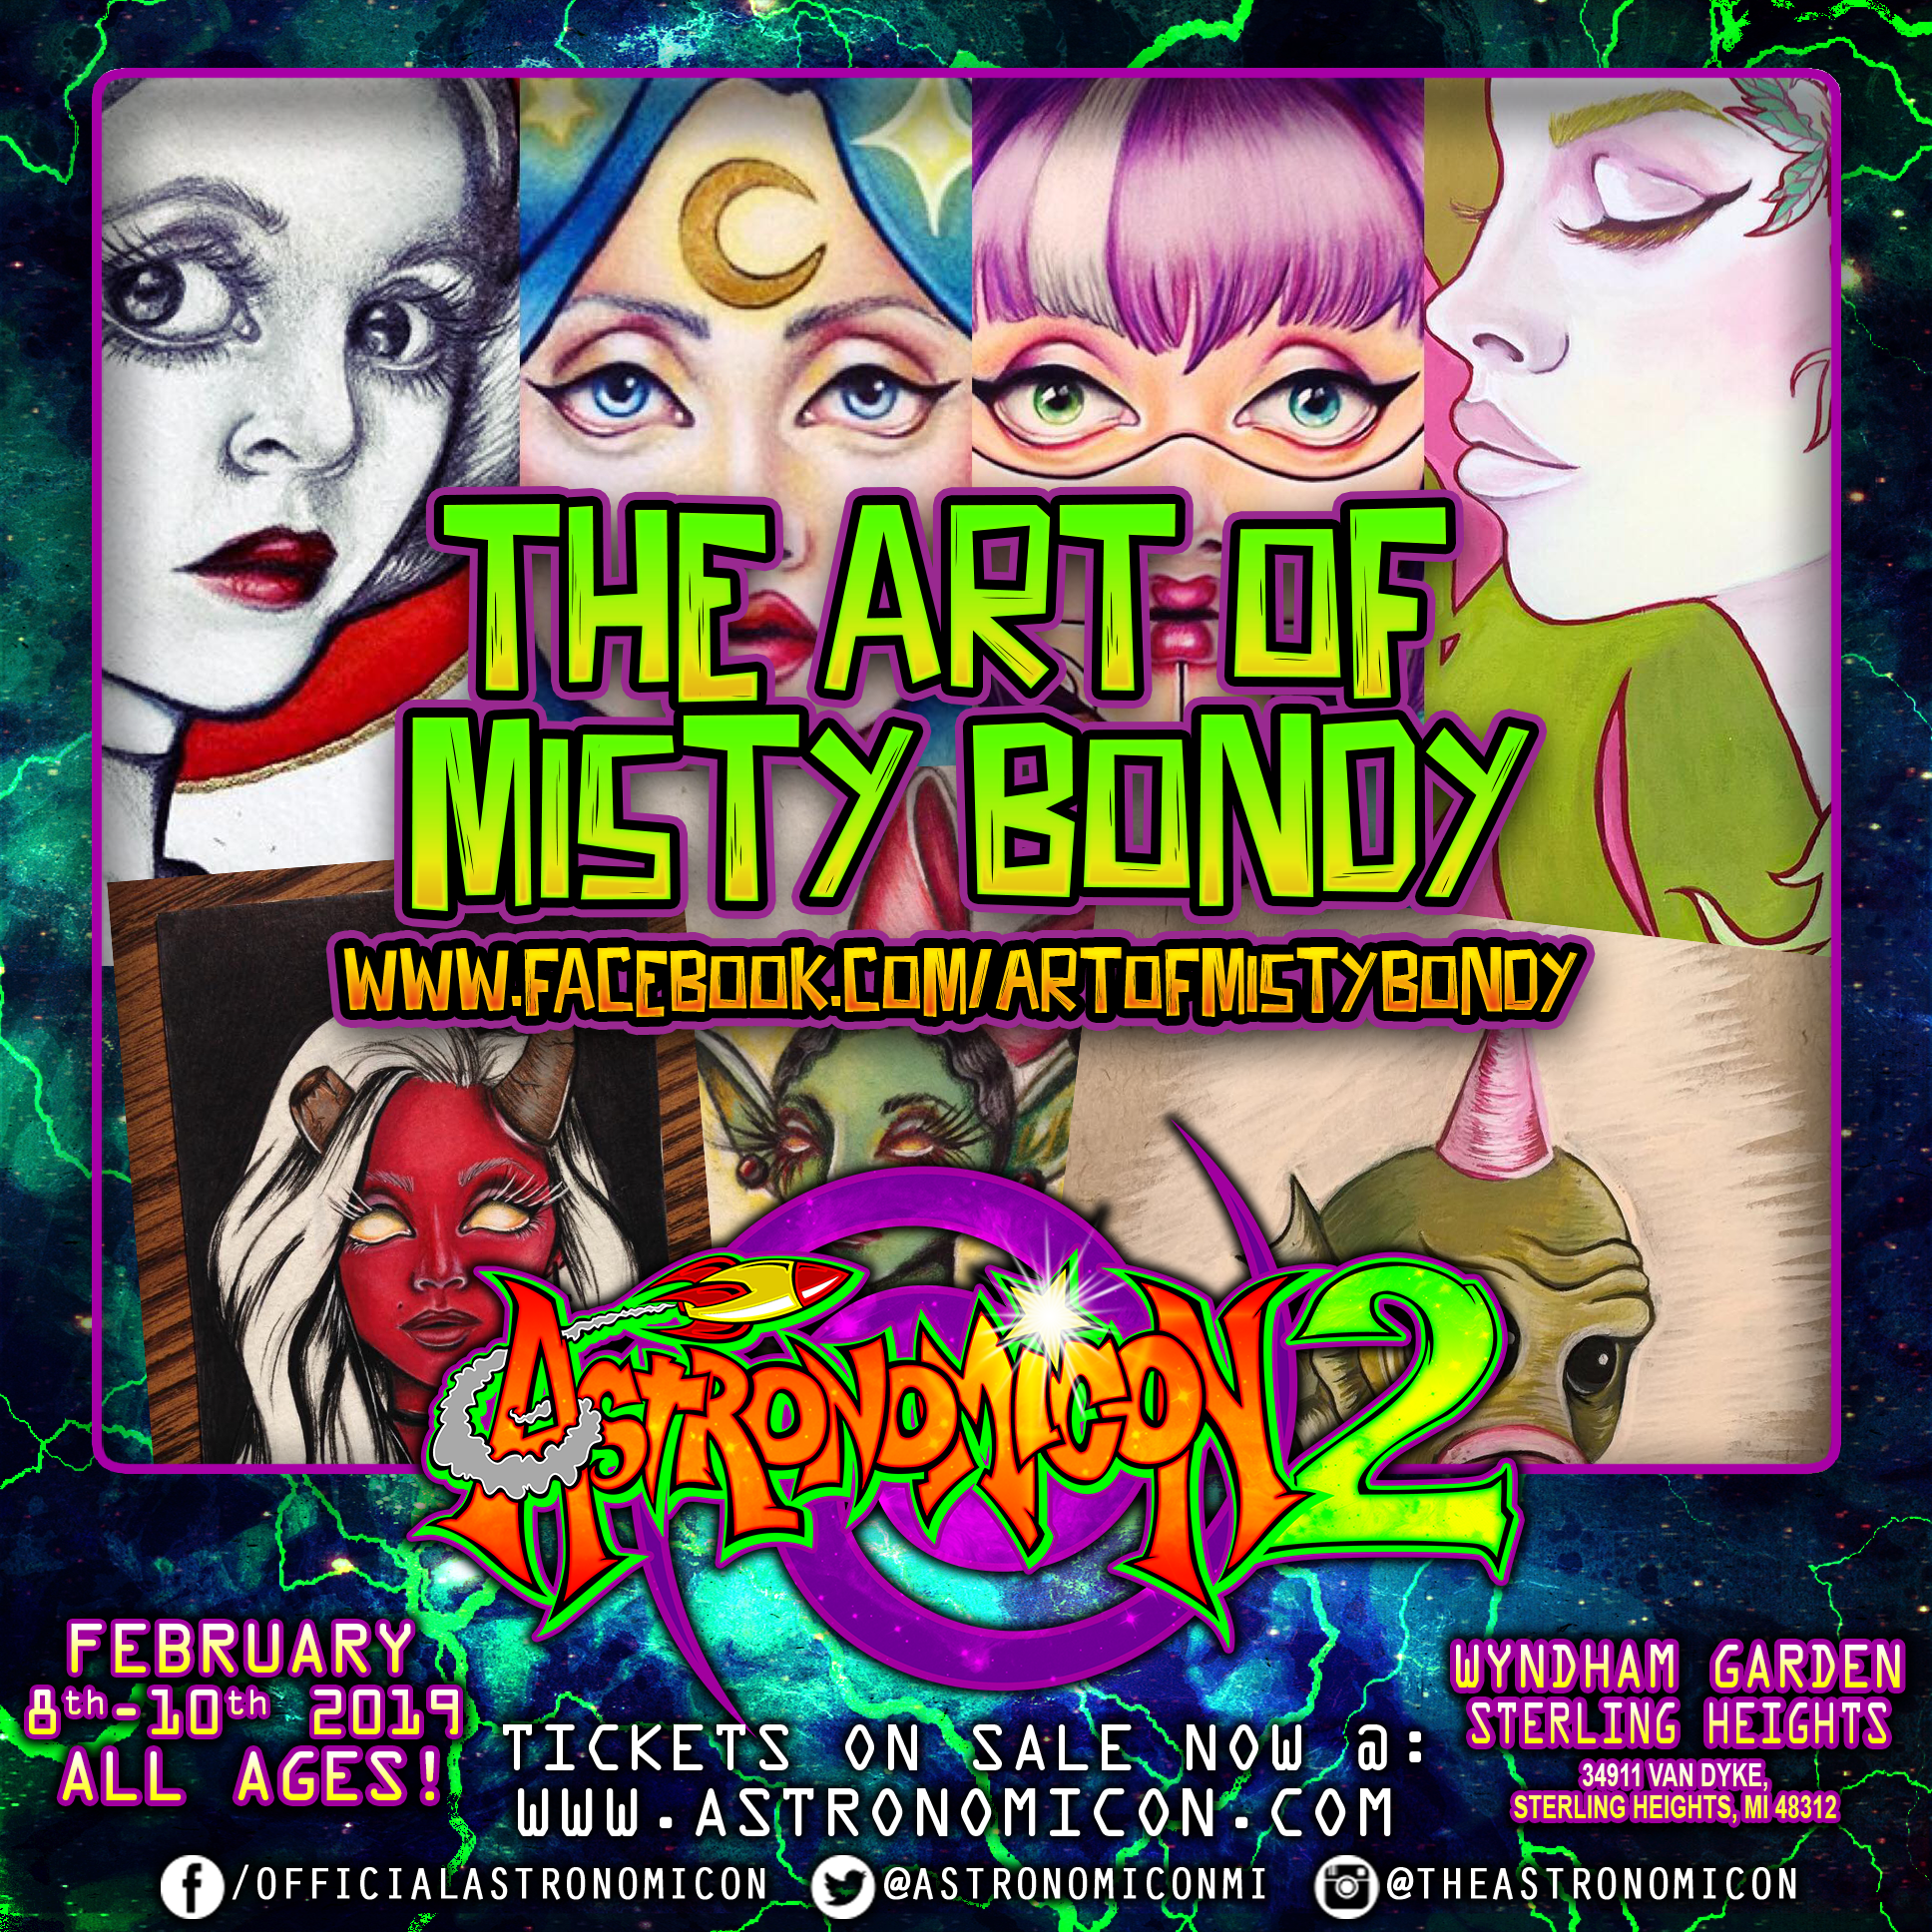 Astronomicon 2 Misty Bondy IG Ad.png